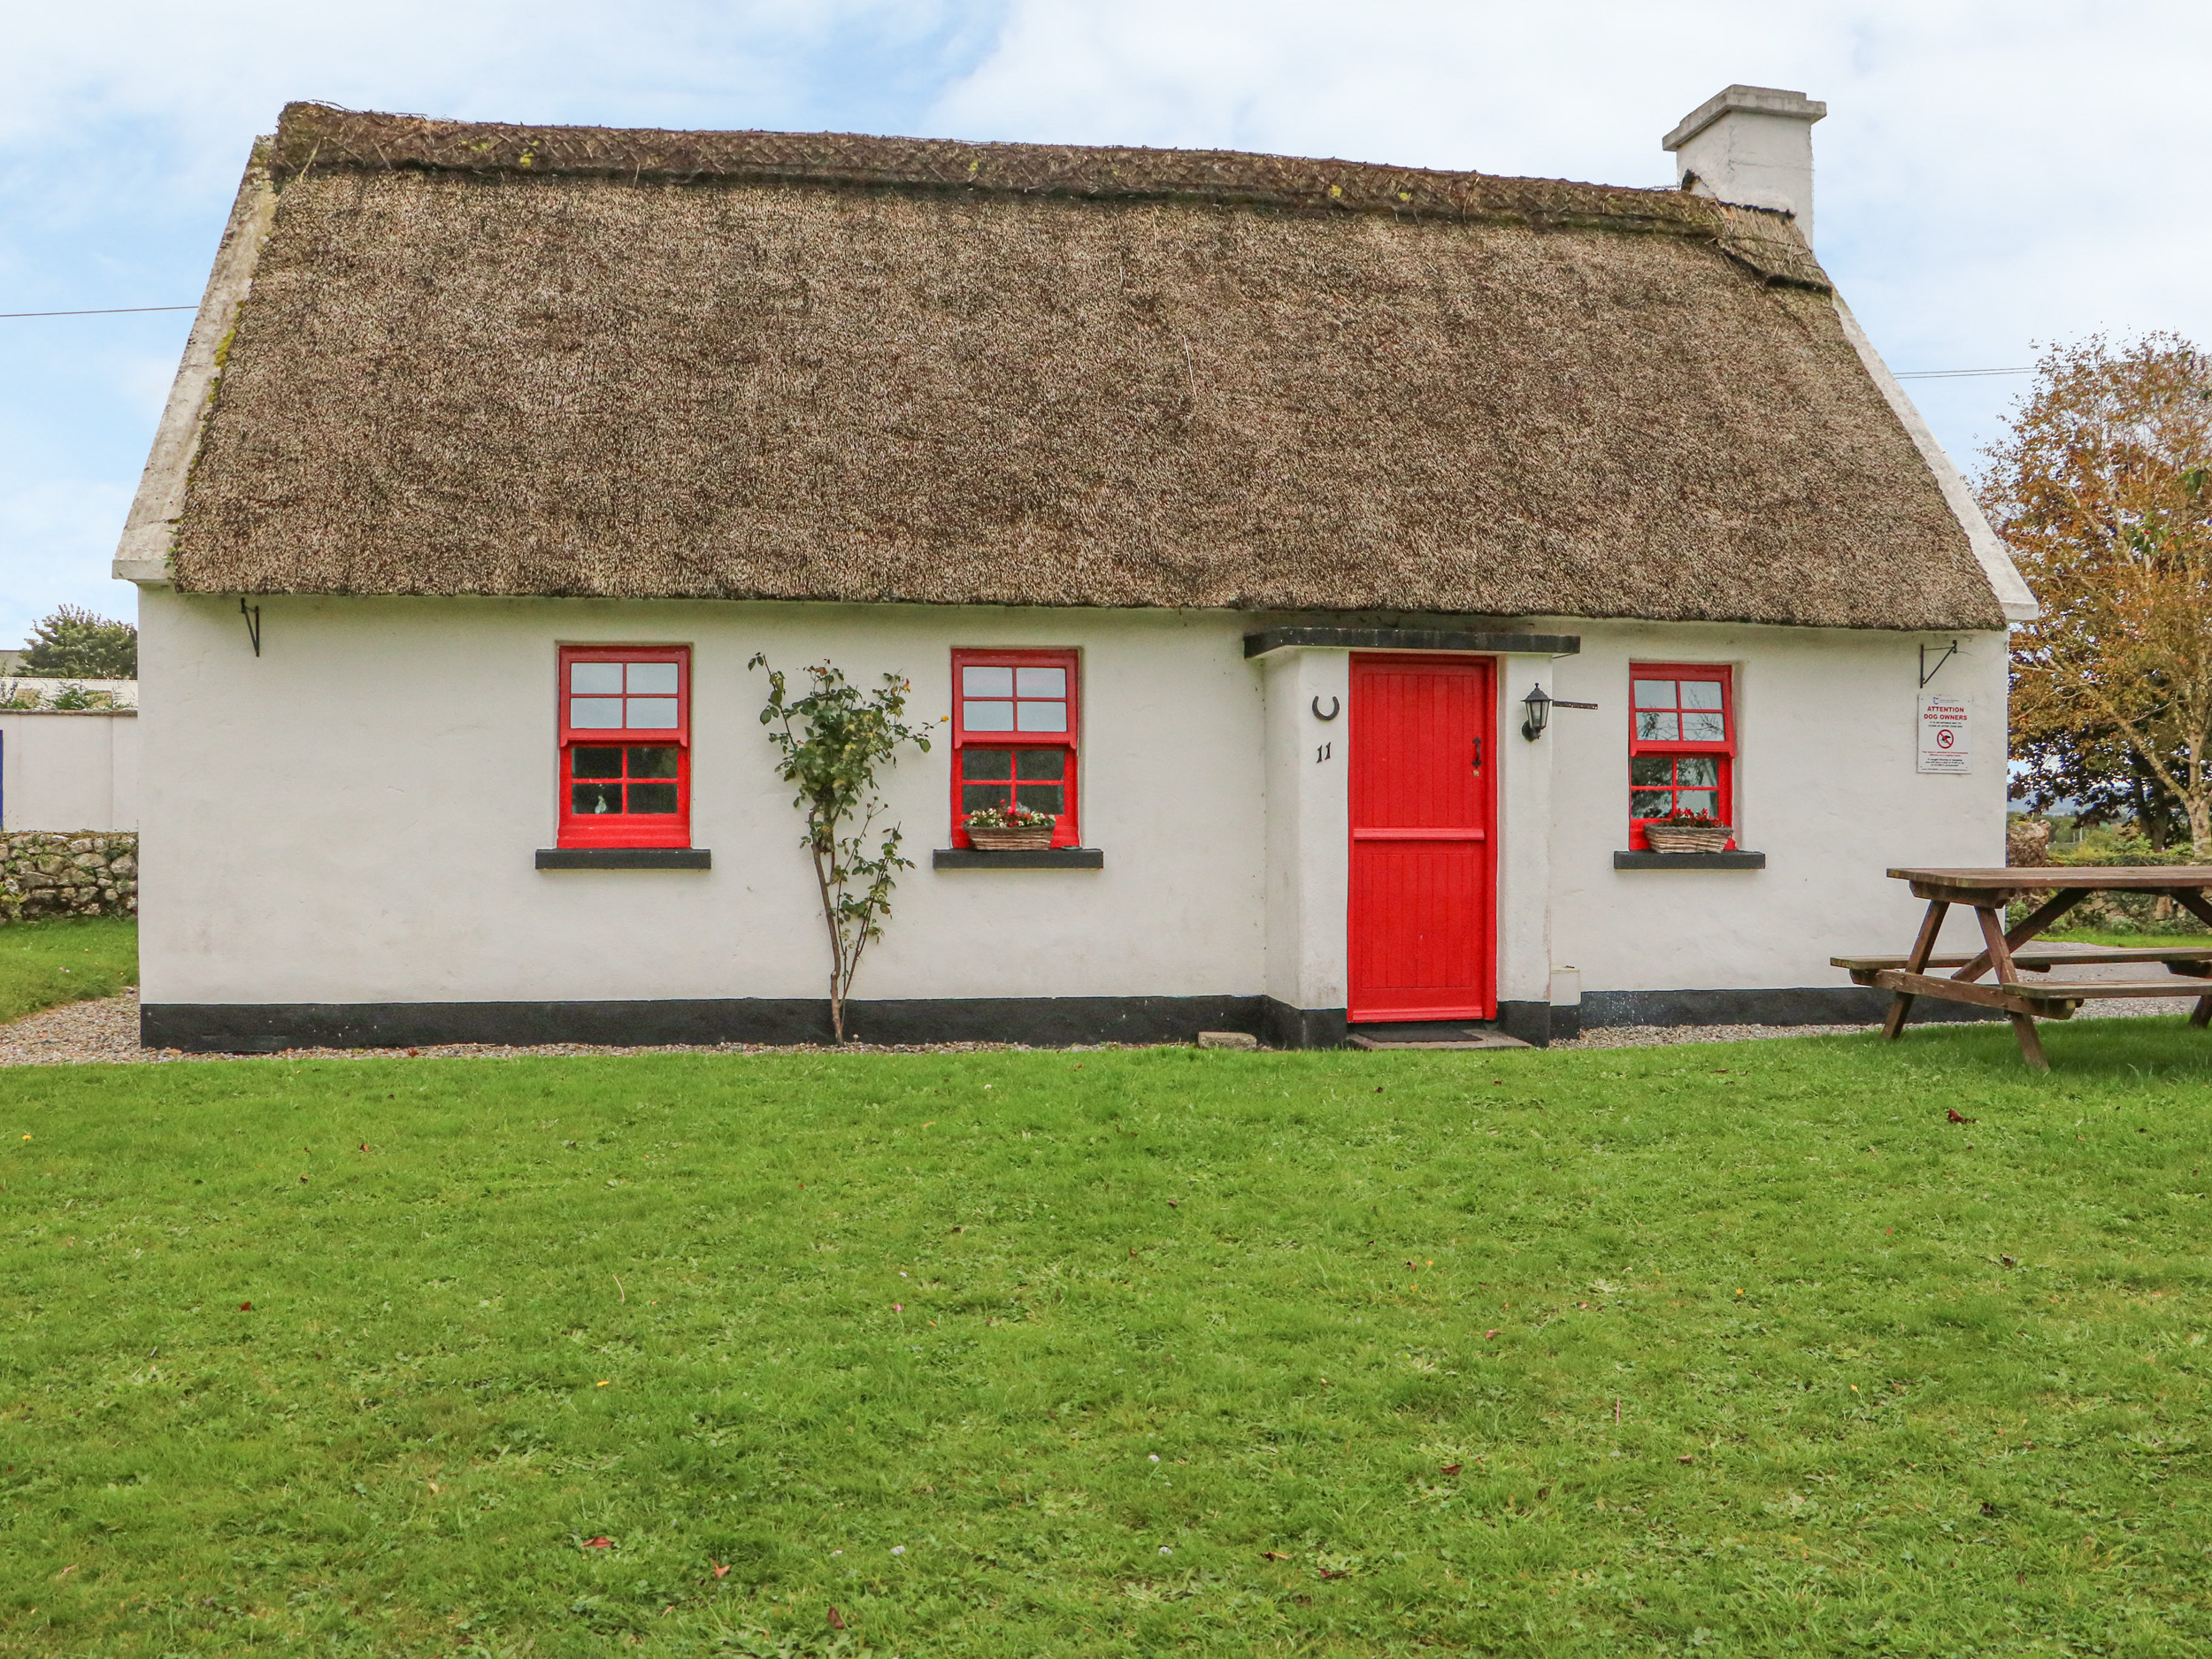 No. 11 Lough Derg Thatched Cottage, County Tipperary